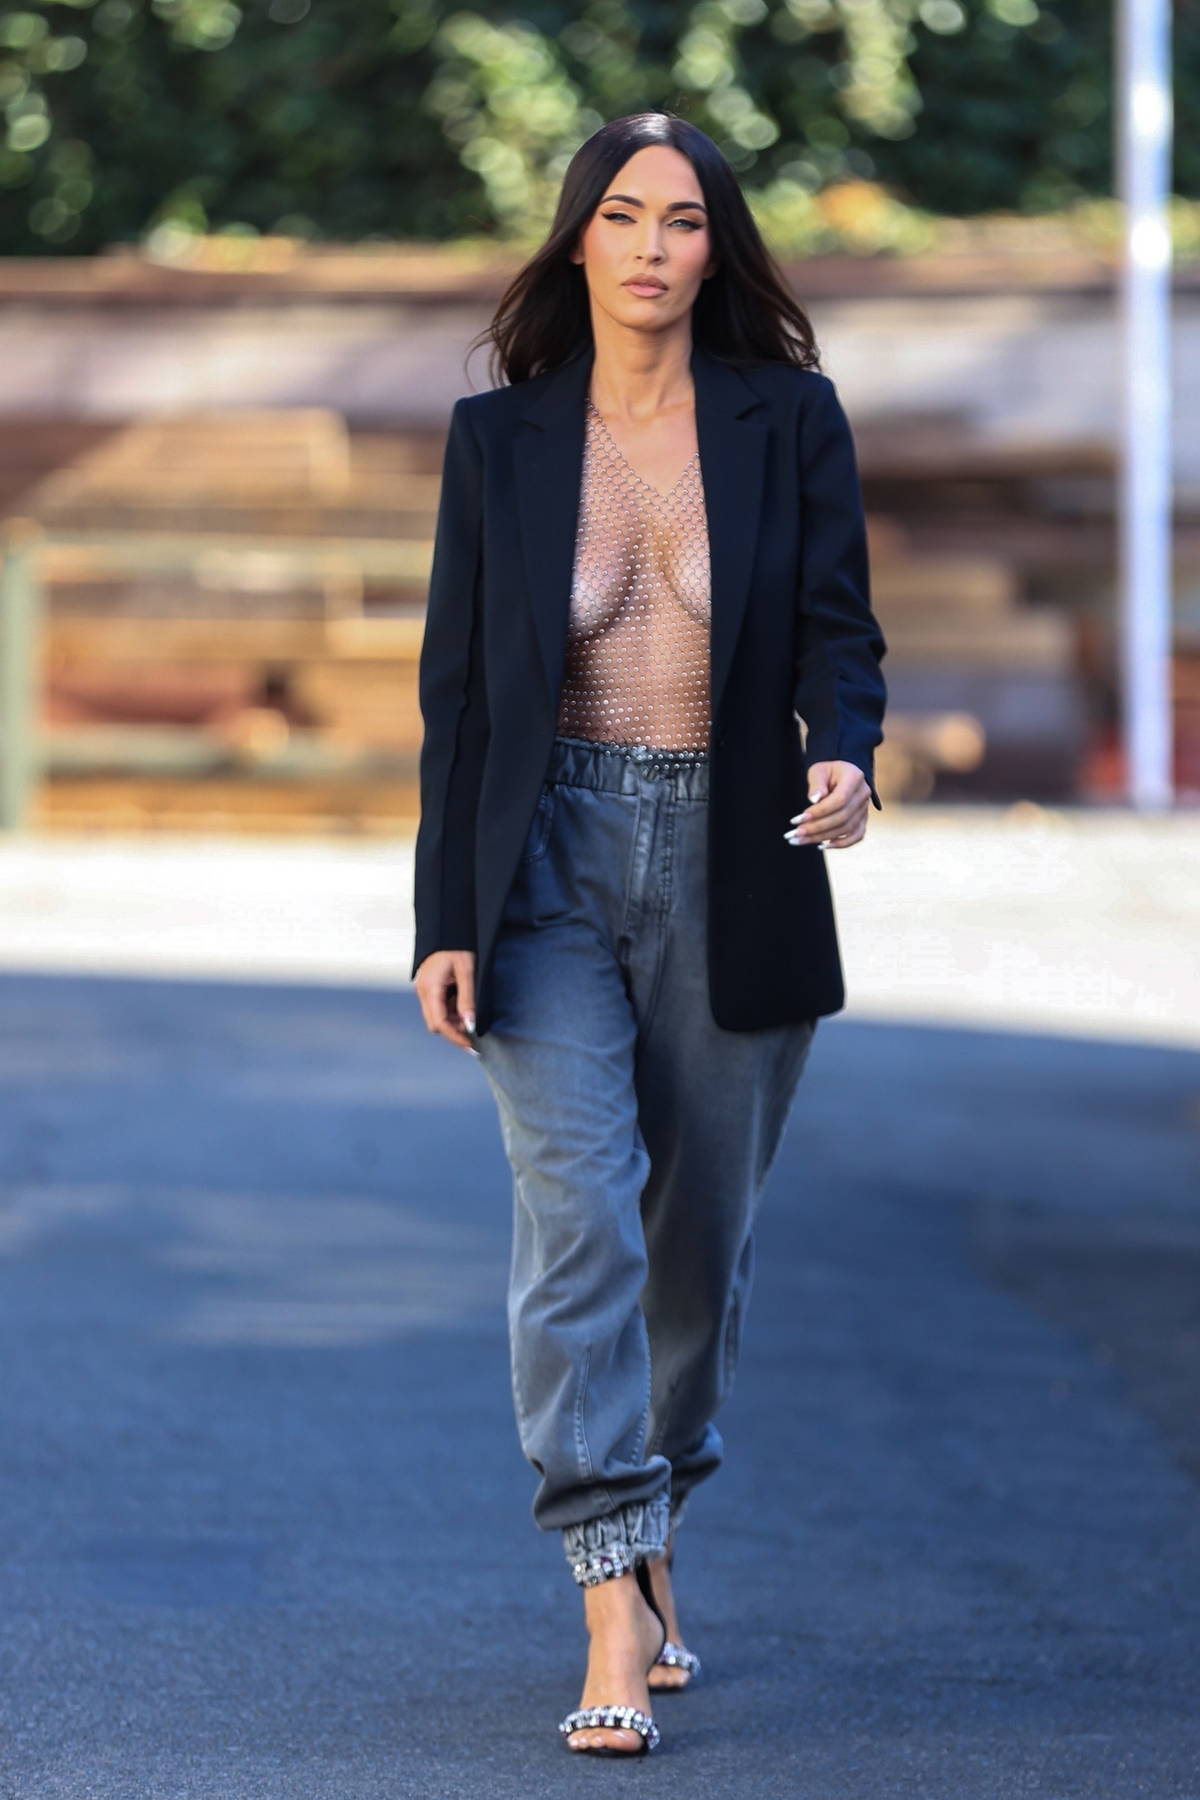 Megan Fox looks sensational in a mesh top with a black blazer while leaving a photoshoot in Los Angeles